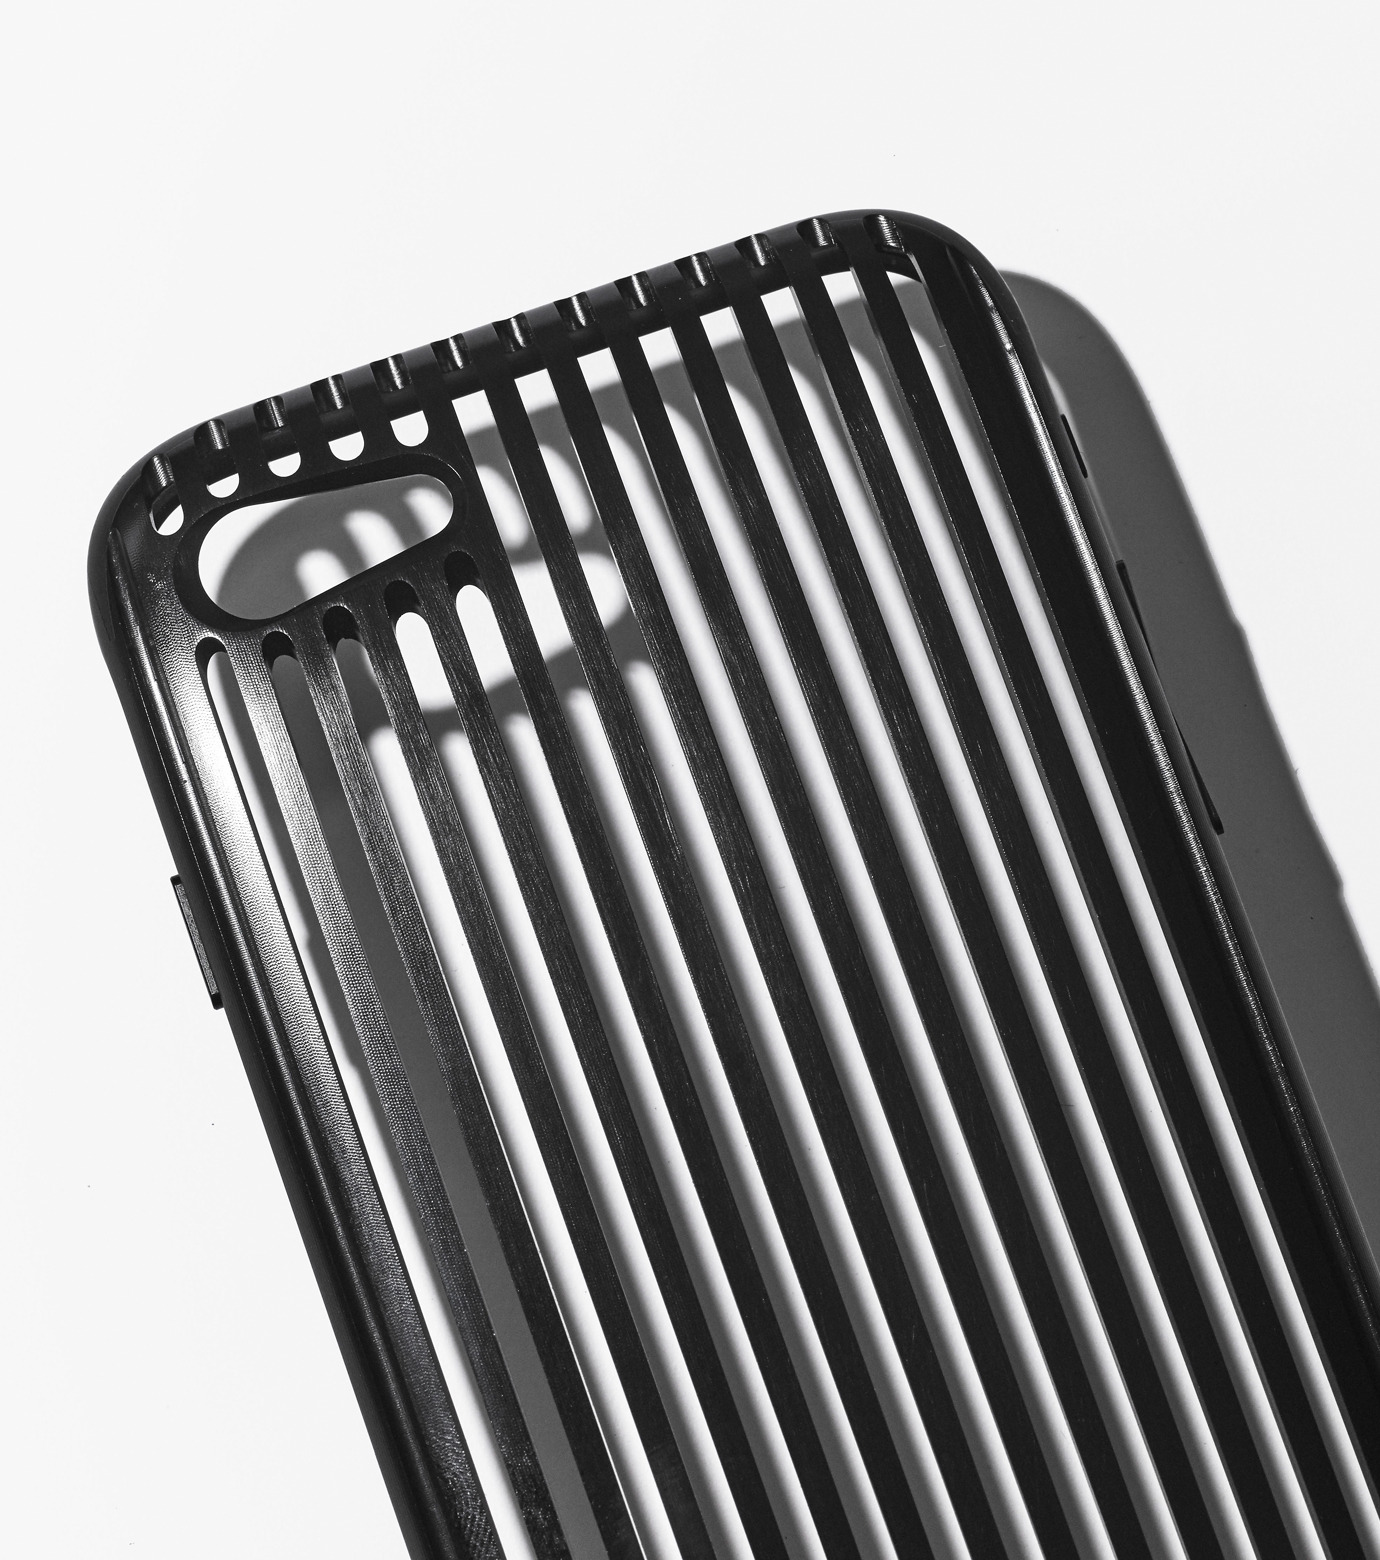 SQUAIR(スクエア)のTHE SLITfor iPhone7-BLACK(ケースiphone7/7plus/case iphone7/7plus)-RES-the-slit-i7 拡大詳細画像3